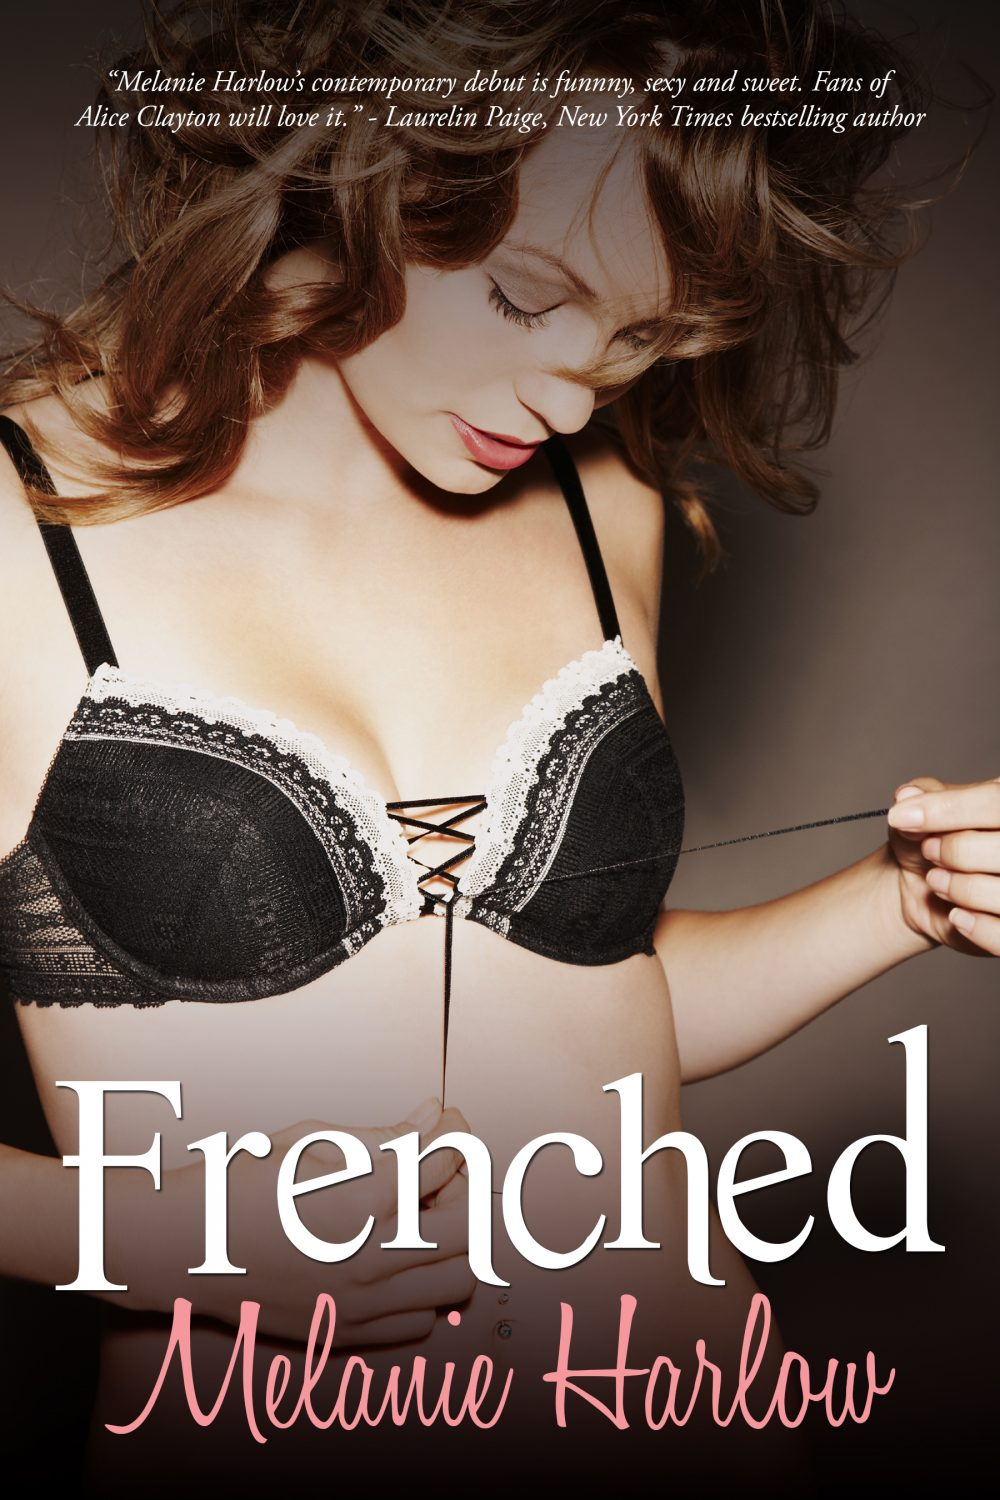 Get FRENCHED for FREE!